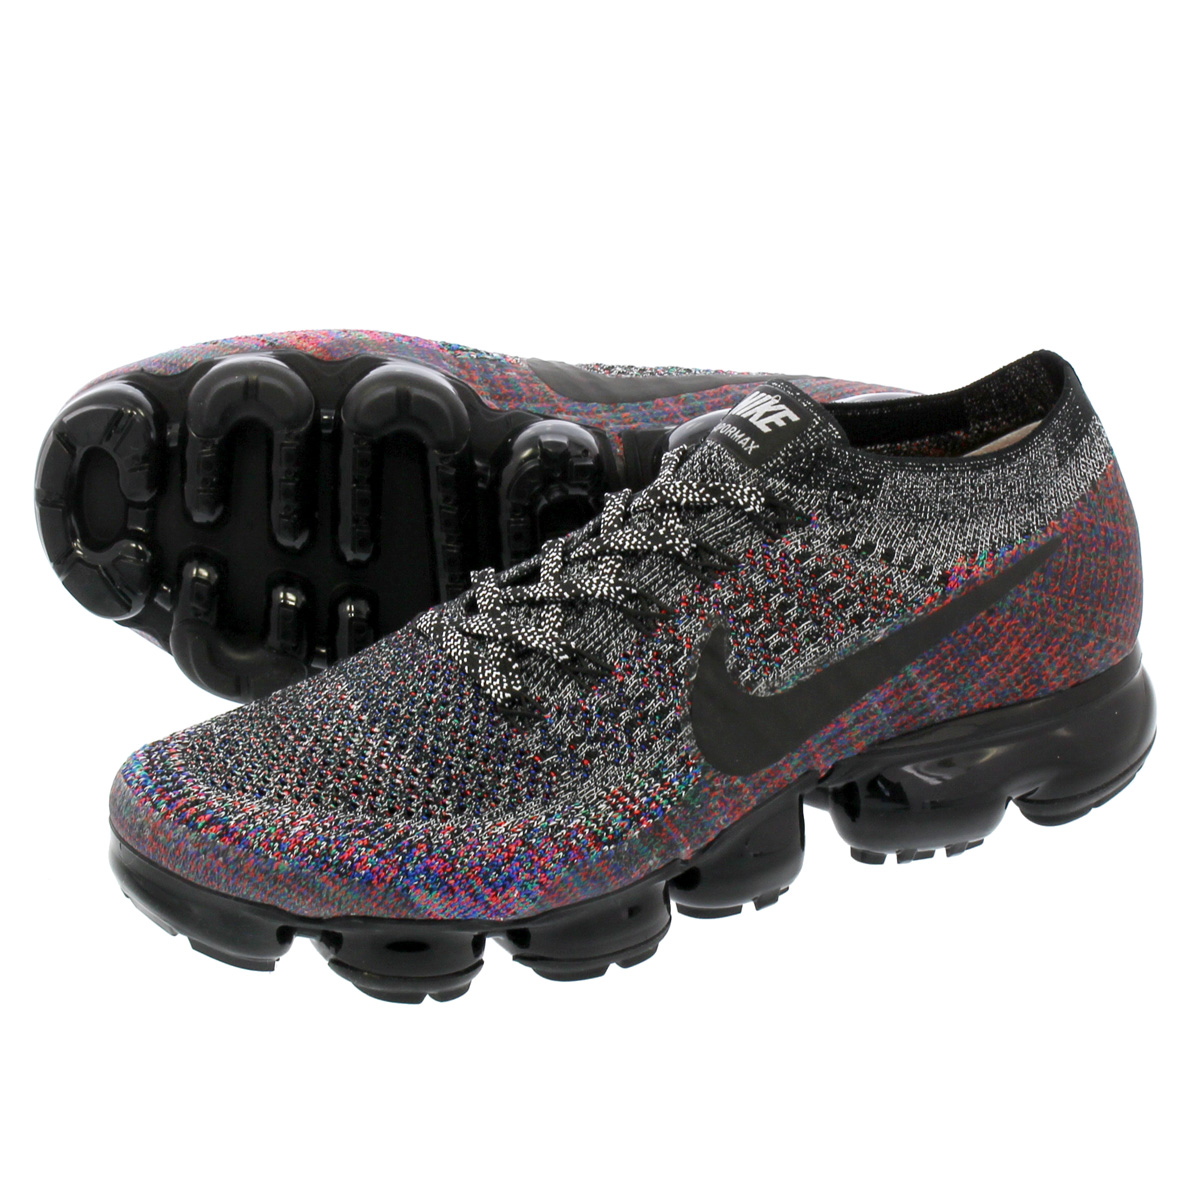 NIKE WMNS AIR VAPORMAX FLYKNIT CNY 【CHINESE NEW YEAR】 ナイキ ヴェイパー マックス フライニット CNY BLACK/MULTI COLOR 849557-016